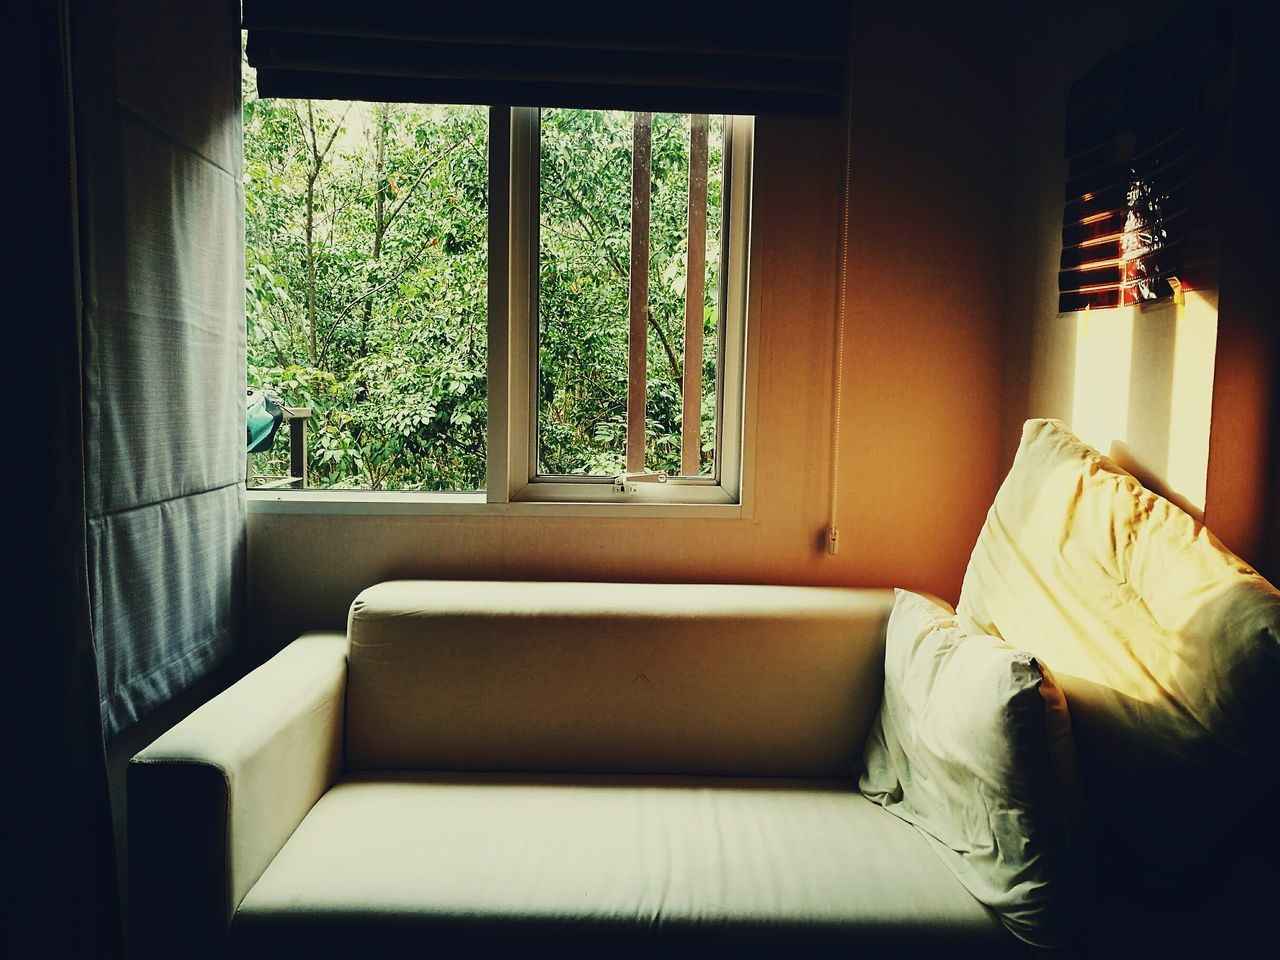 Window Indoors  Luxury Home Interior Day Bedroom No People Sofa Sofatime HuaweiP9Photography Huaweiphotography DualCamera Leicacamera Colour Of Life Eyeemphoto Eyemphotography Lightoflife Lifestyles EyeEm Nature Lover Indoors  Backgrounds Full Frame Nature_collection Inthemoment Intheroom